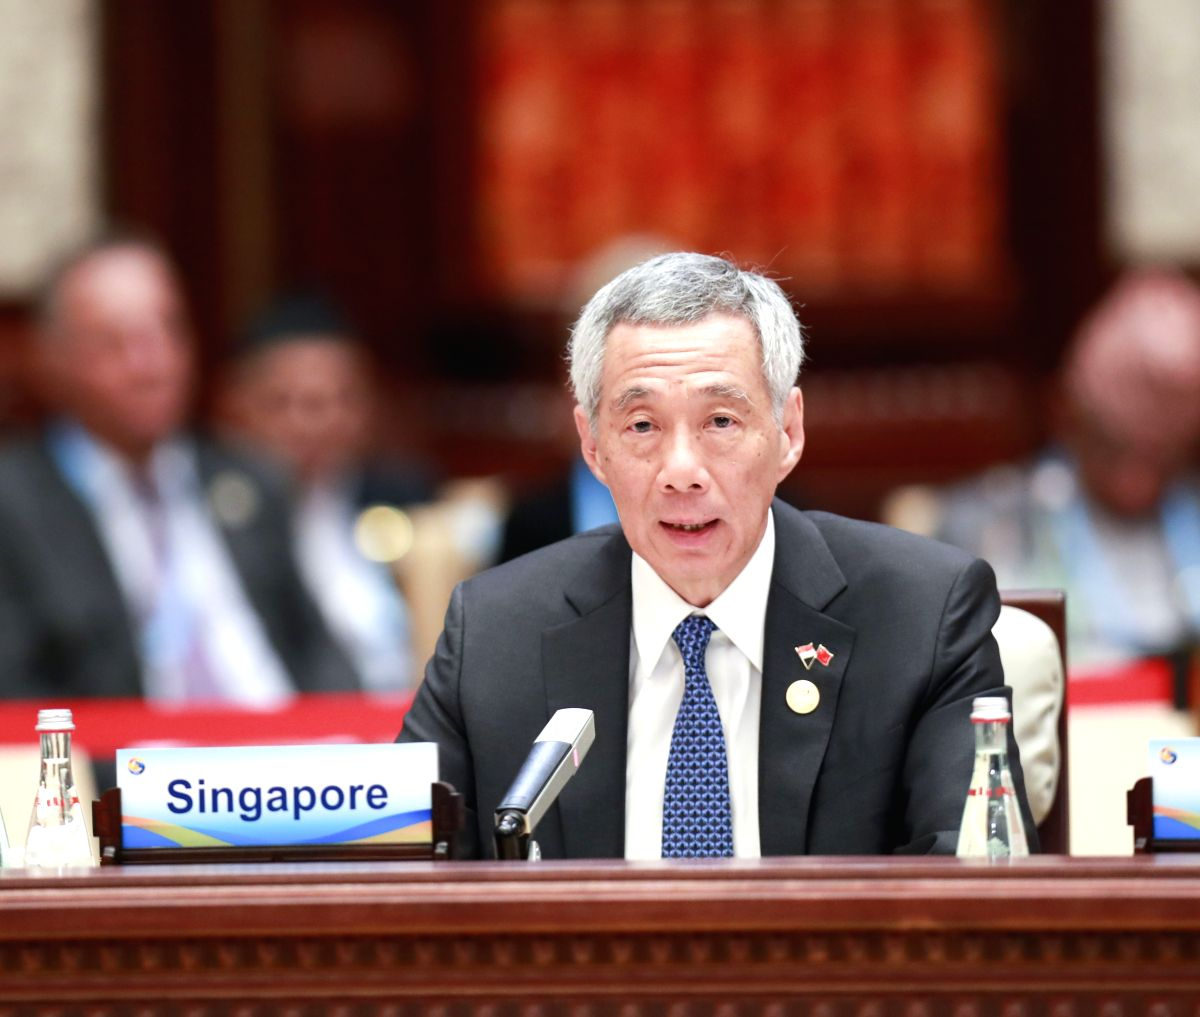 BEIJING, April 27, 2019 (Xinhua) -- Singaporean Prime Minister Lee Hsien Loong speaks at the leaders' roundtable meeting of the Second Belt and Road Forum for International Cooperation at the Yanqi Lake International Convention Center in Beijing, cap